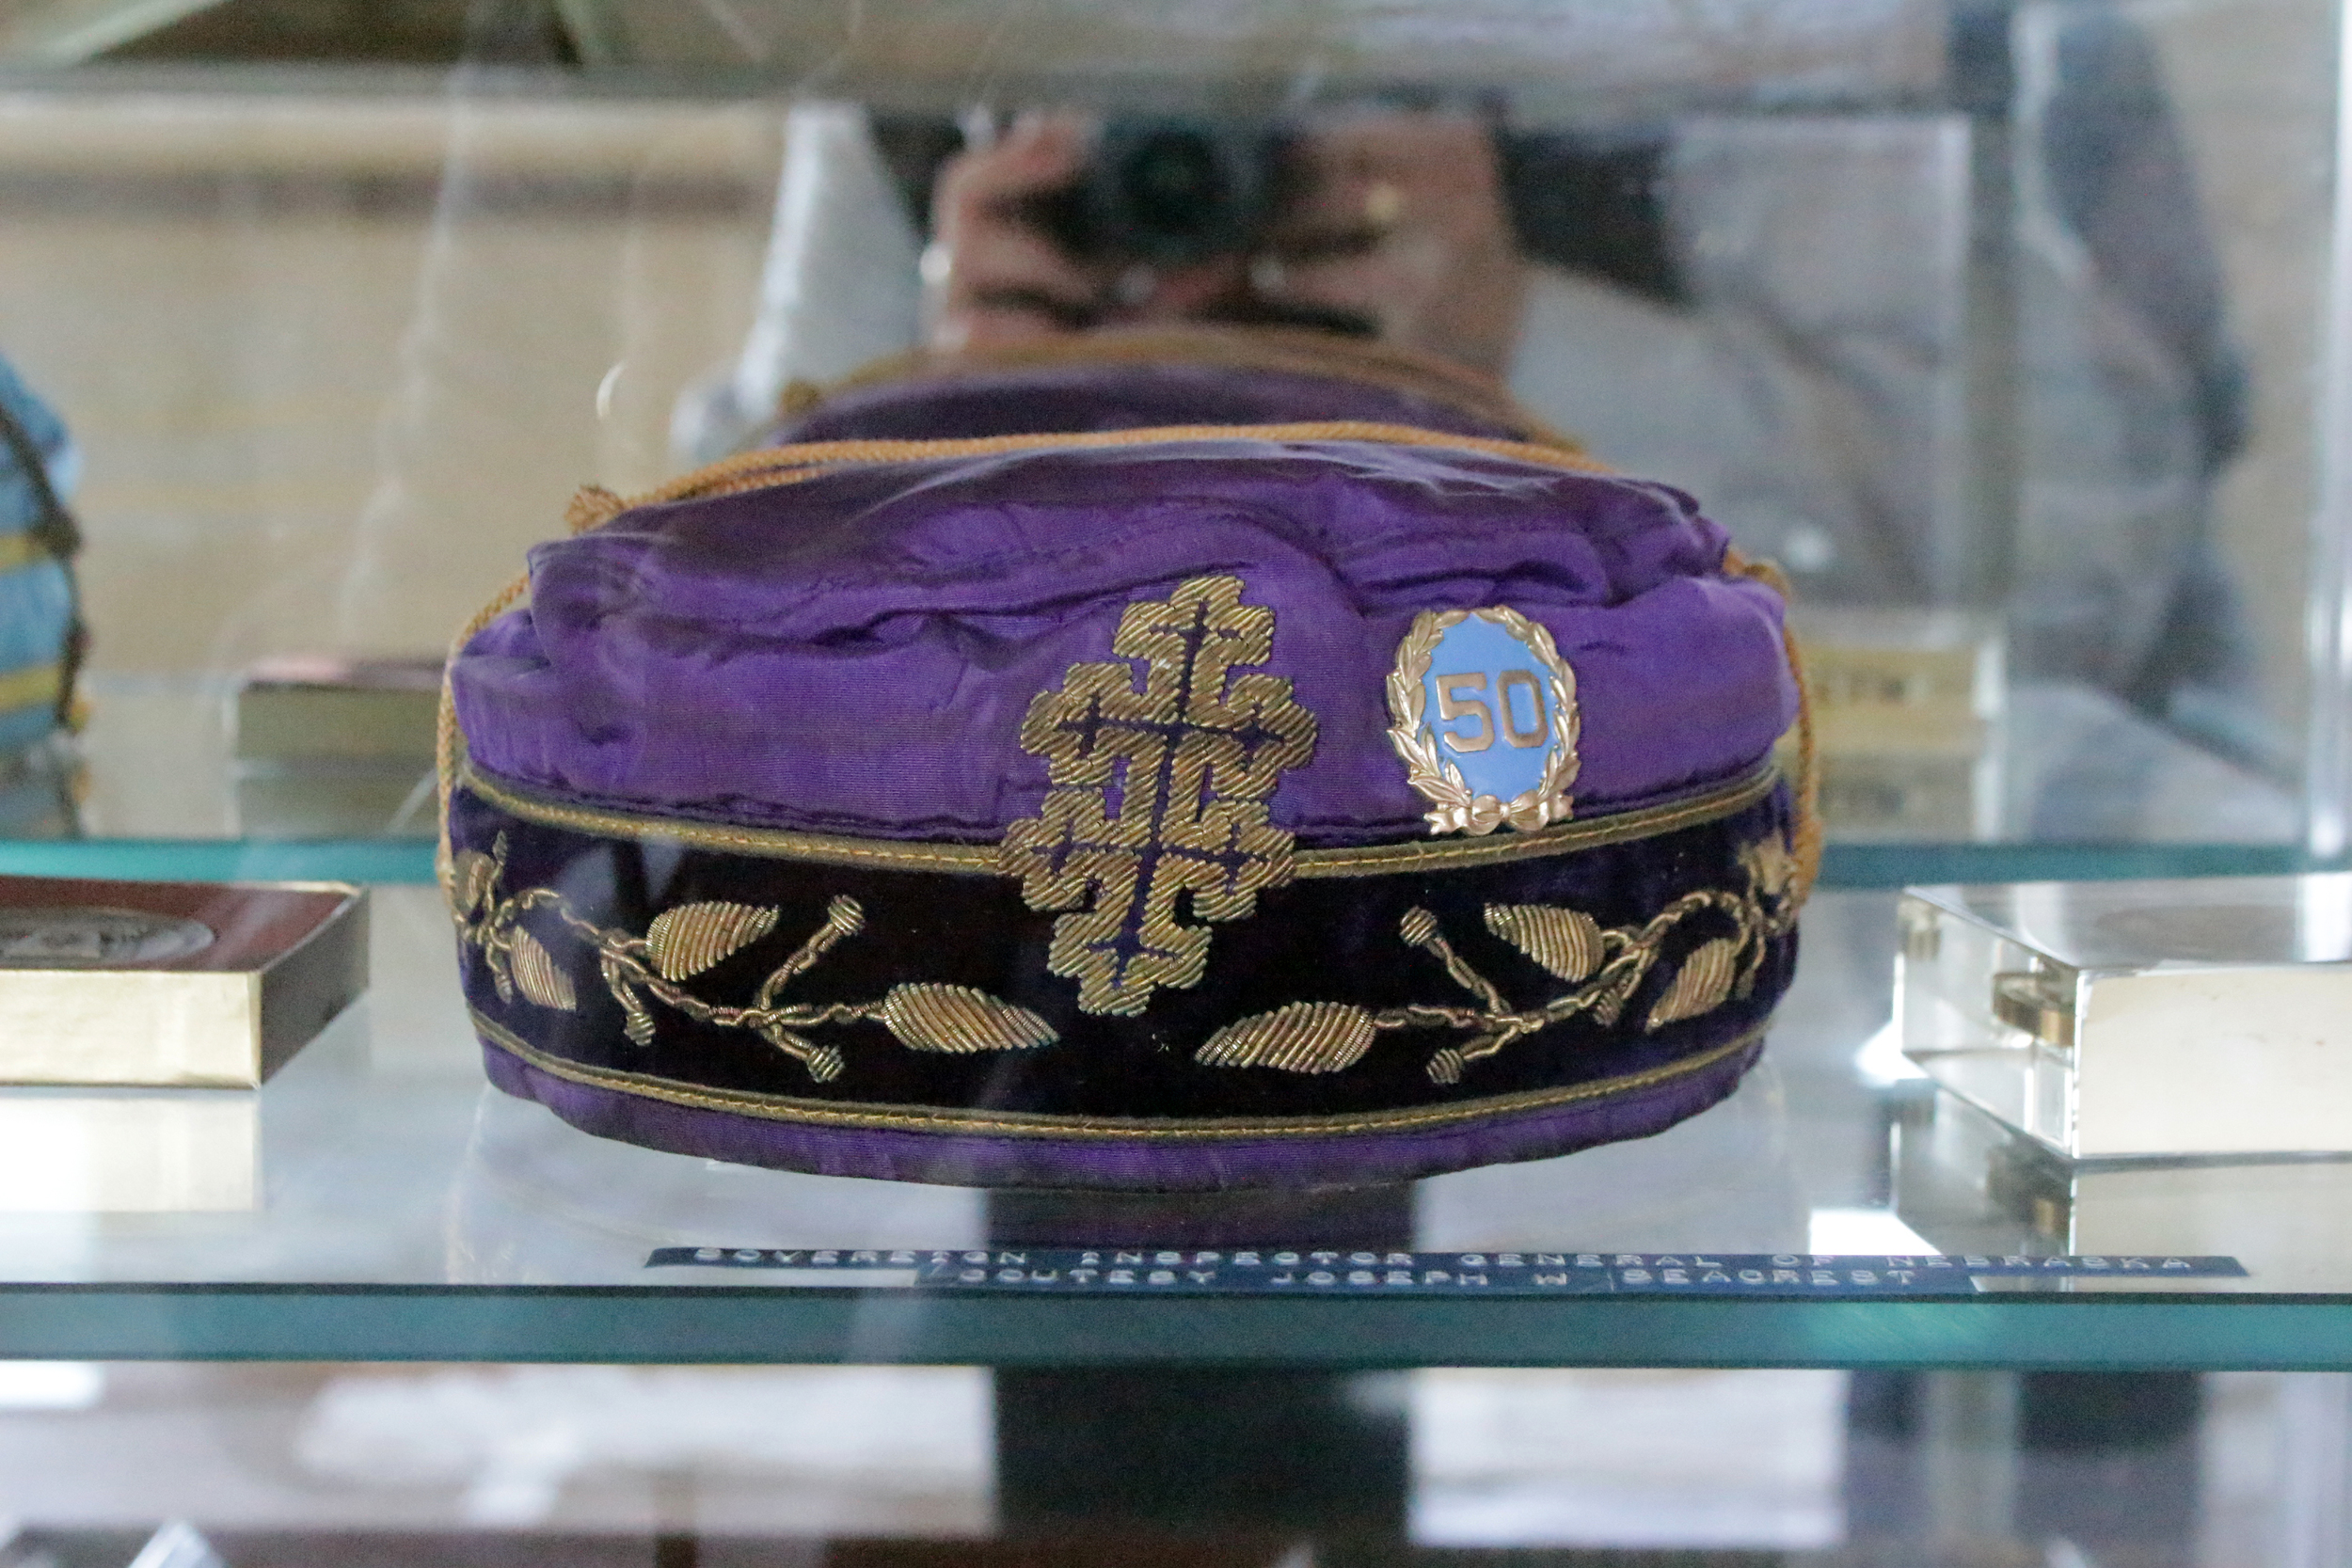 33° Sovereign Grand Inspector General cap belonging to Joseph Seacrest, who served from 1950-1971, now in the museum at the Hastings Masonic Center.